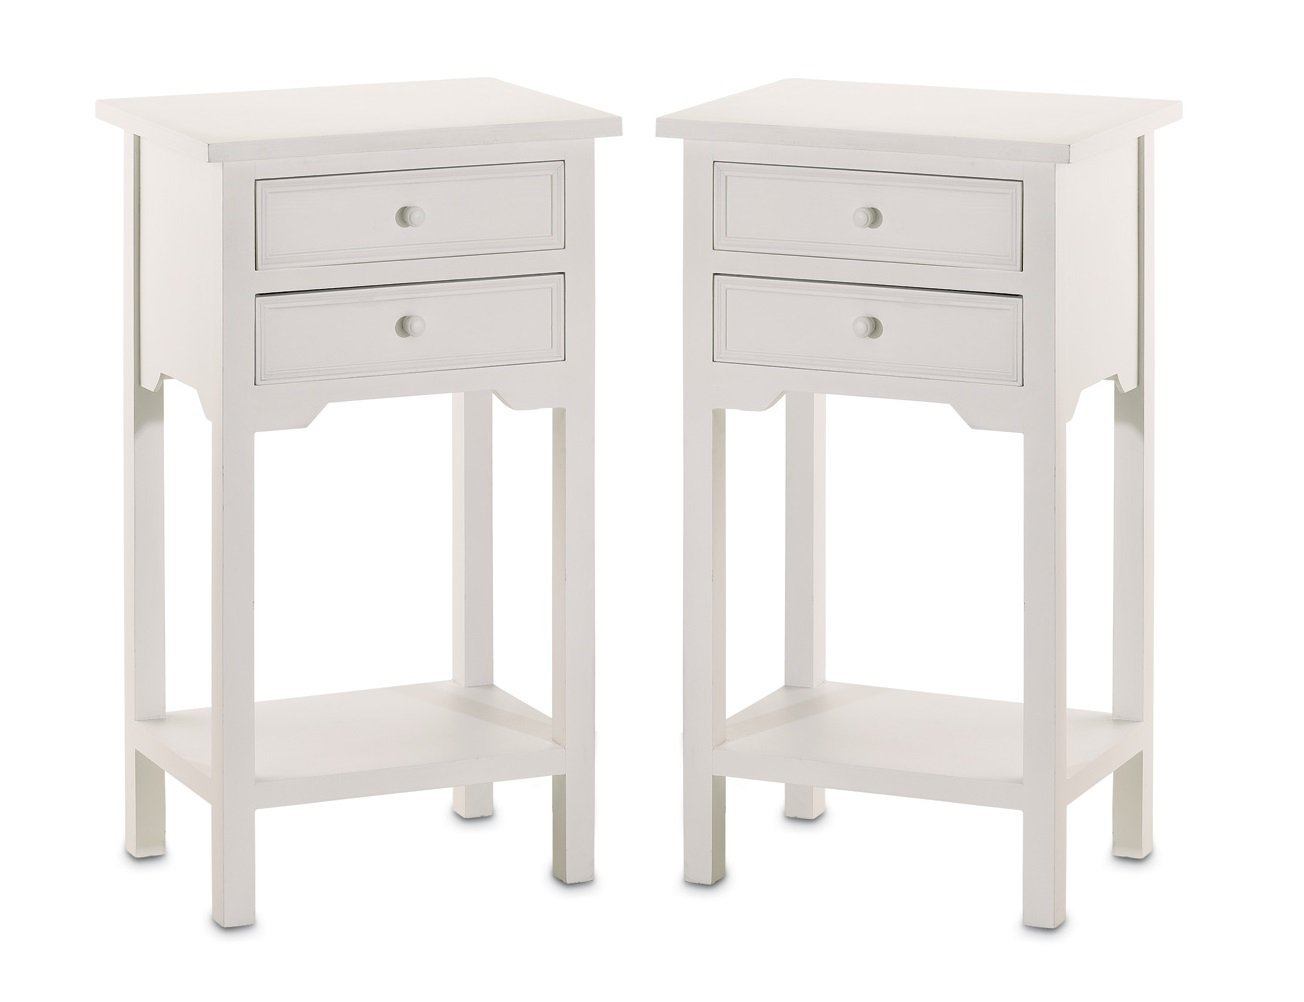 set wood white end tables nightstands with two tall chloe accent table drawers couch covers pottery barn bench sun porch furniture wicker patio rose gold target trestle style